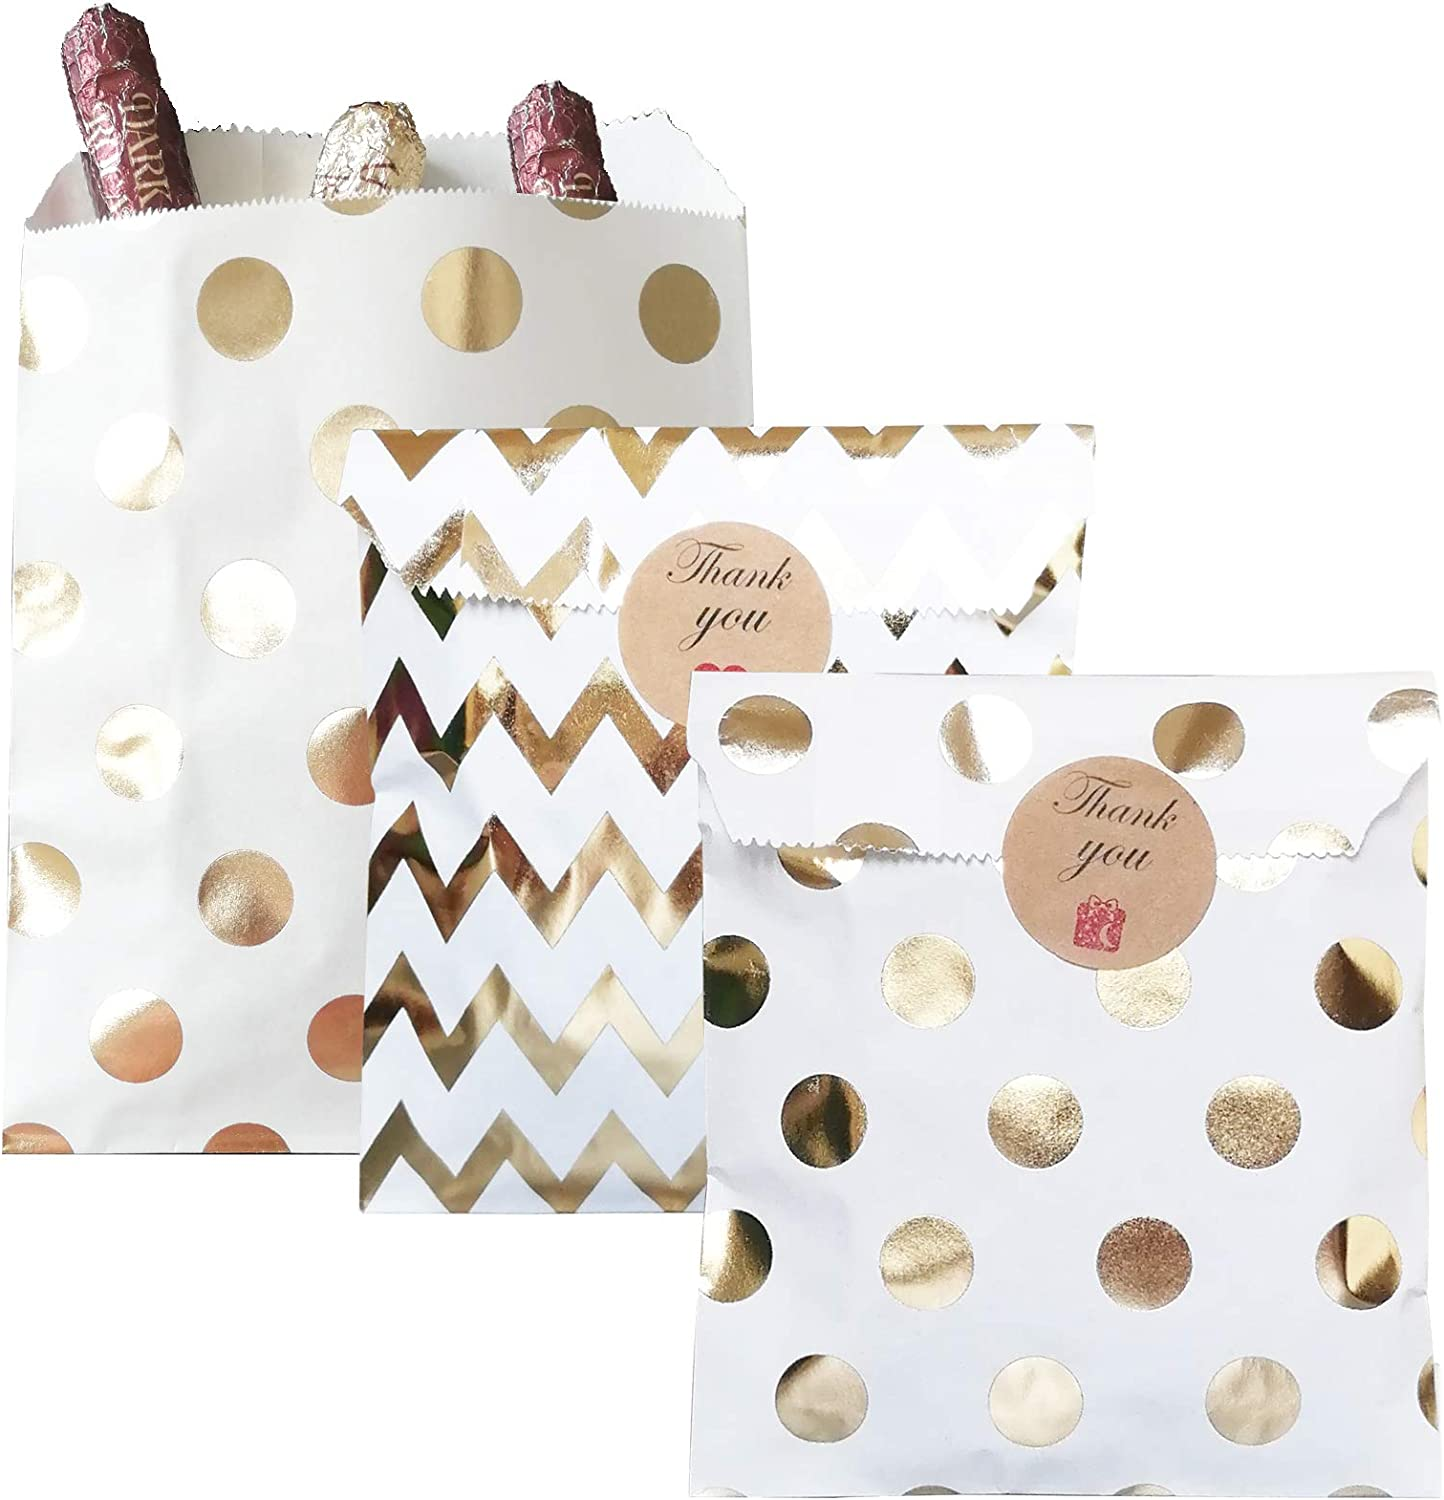 Party favor bag 5*7 inch, 50 pcs Food Safe Kraft Paper, Natural (Biodegradable), Vivid Colored Candy Cookie Buffet Bags,flat bag with 48 1.5 inch stickers.(chevron and Polka dot patterns, Gold foil)